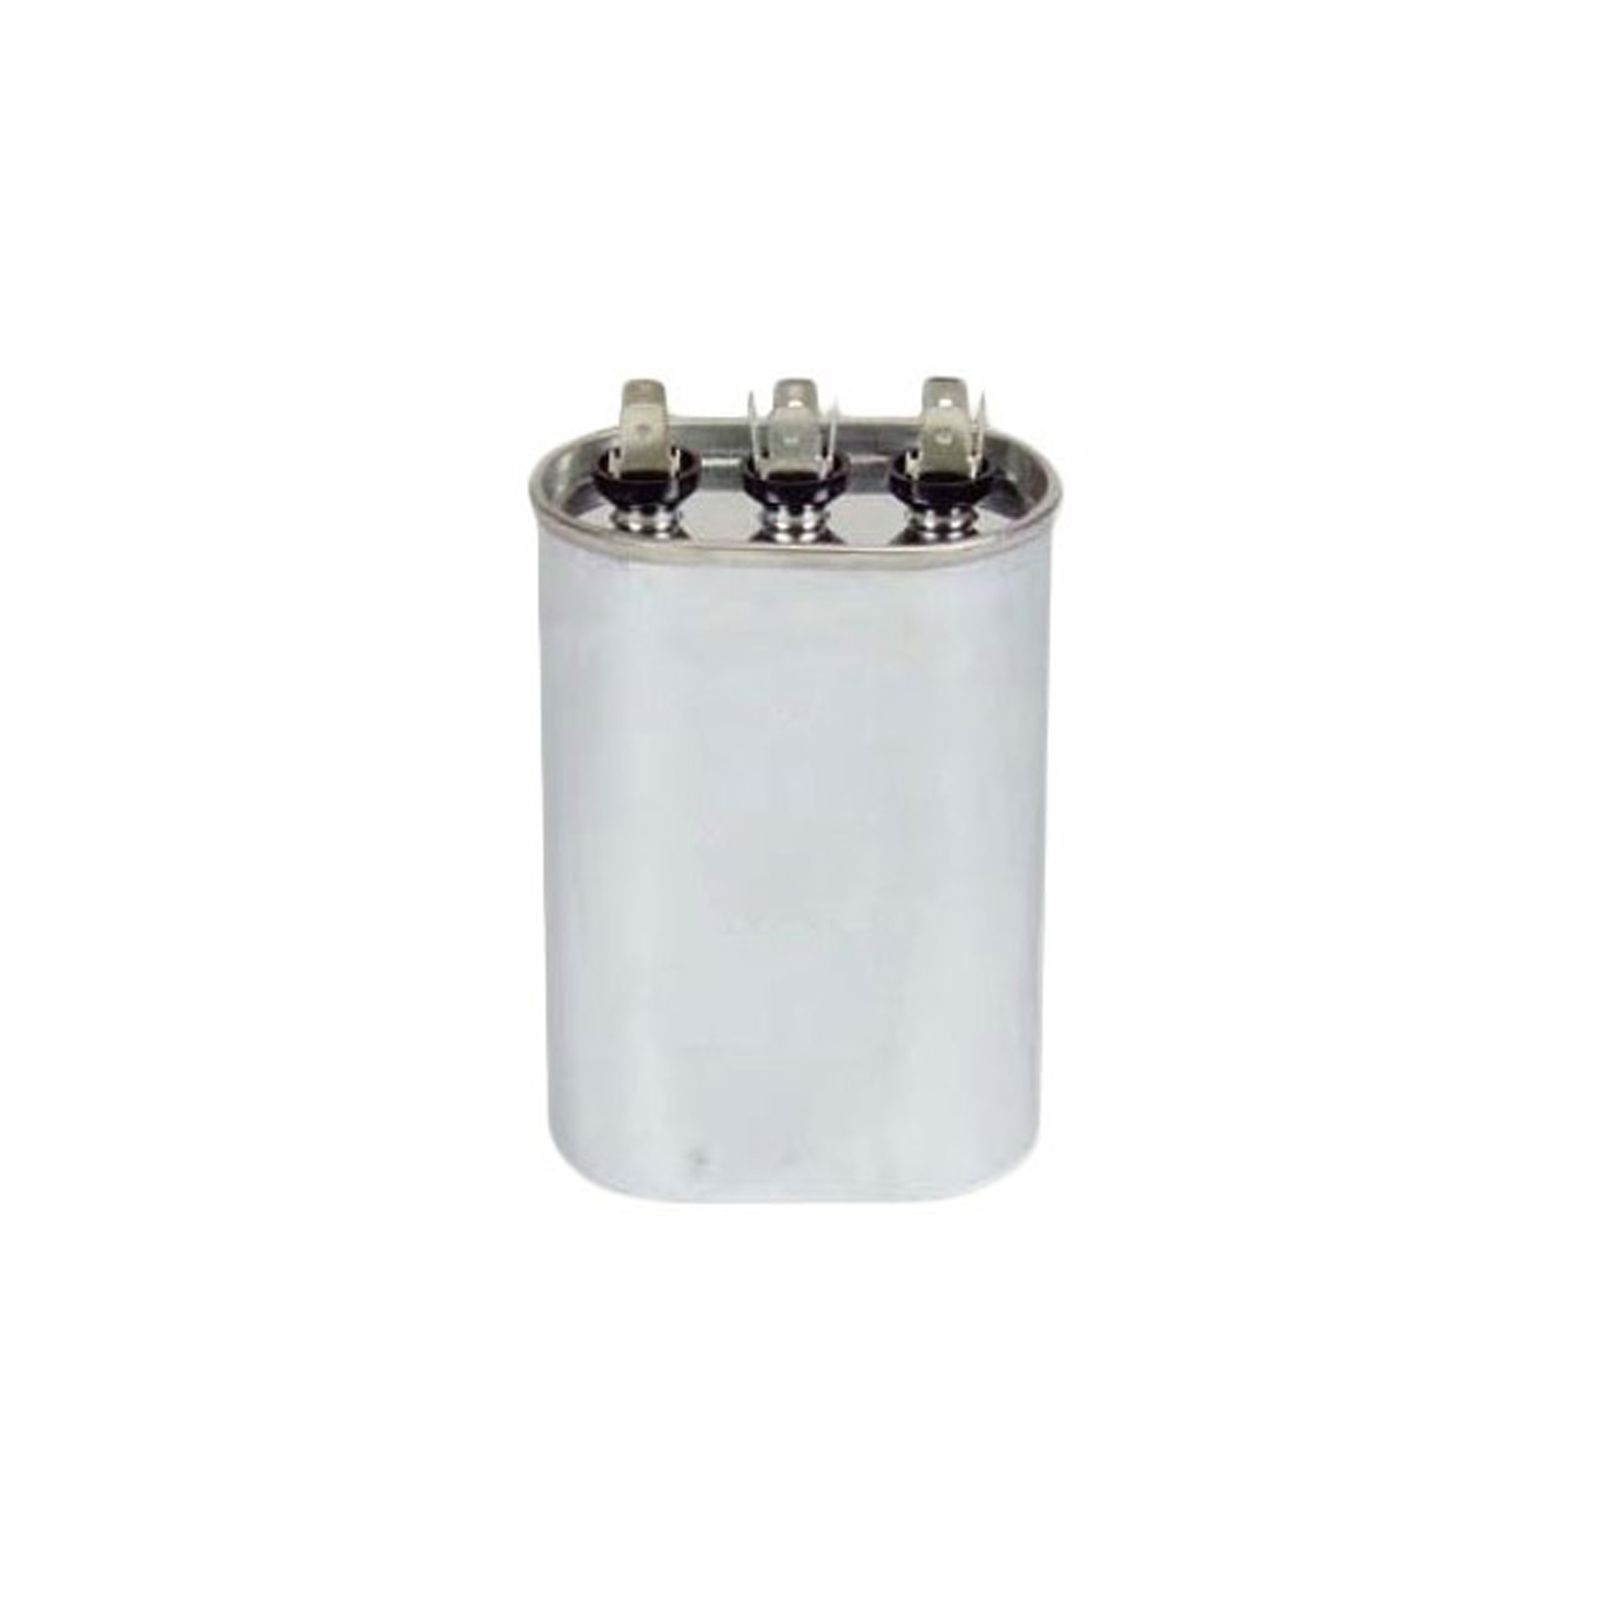 PROTECH 43-25135-20 - Capacitor - 40/3/440 Dual Oval